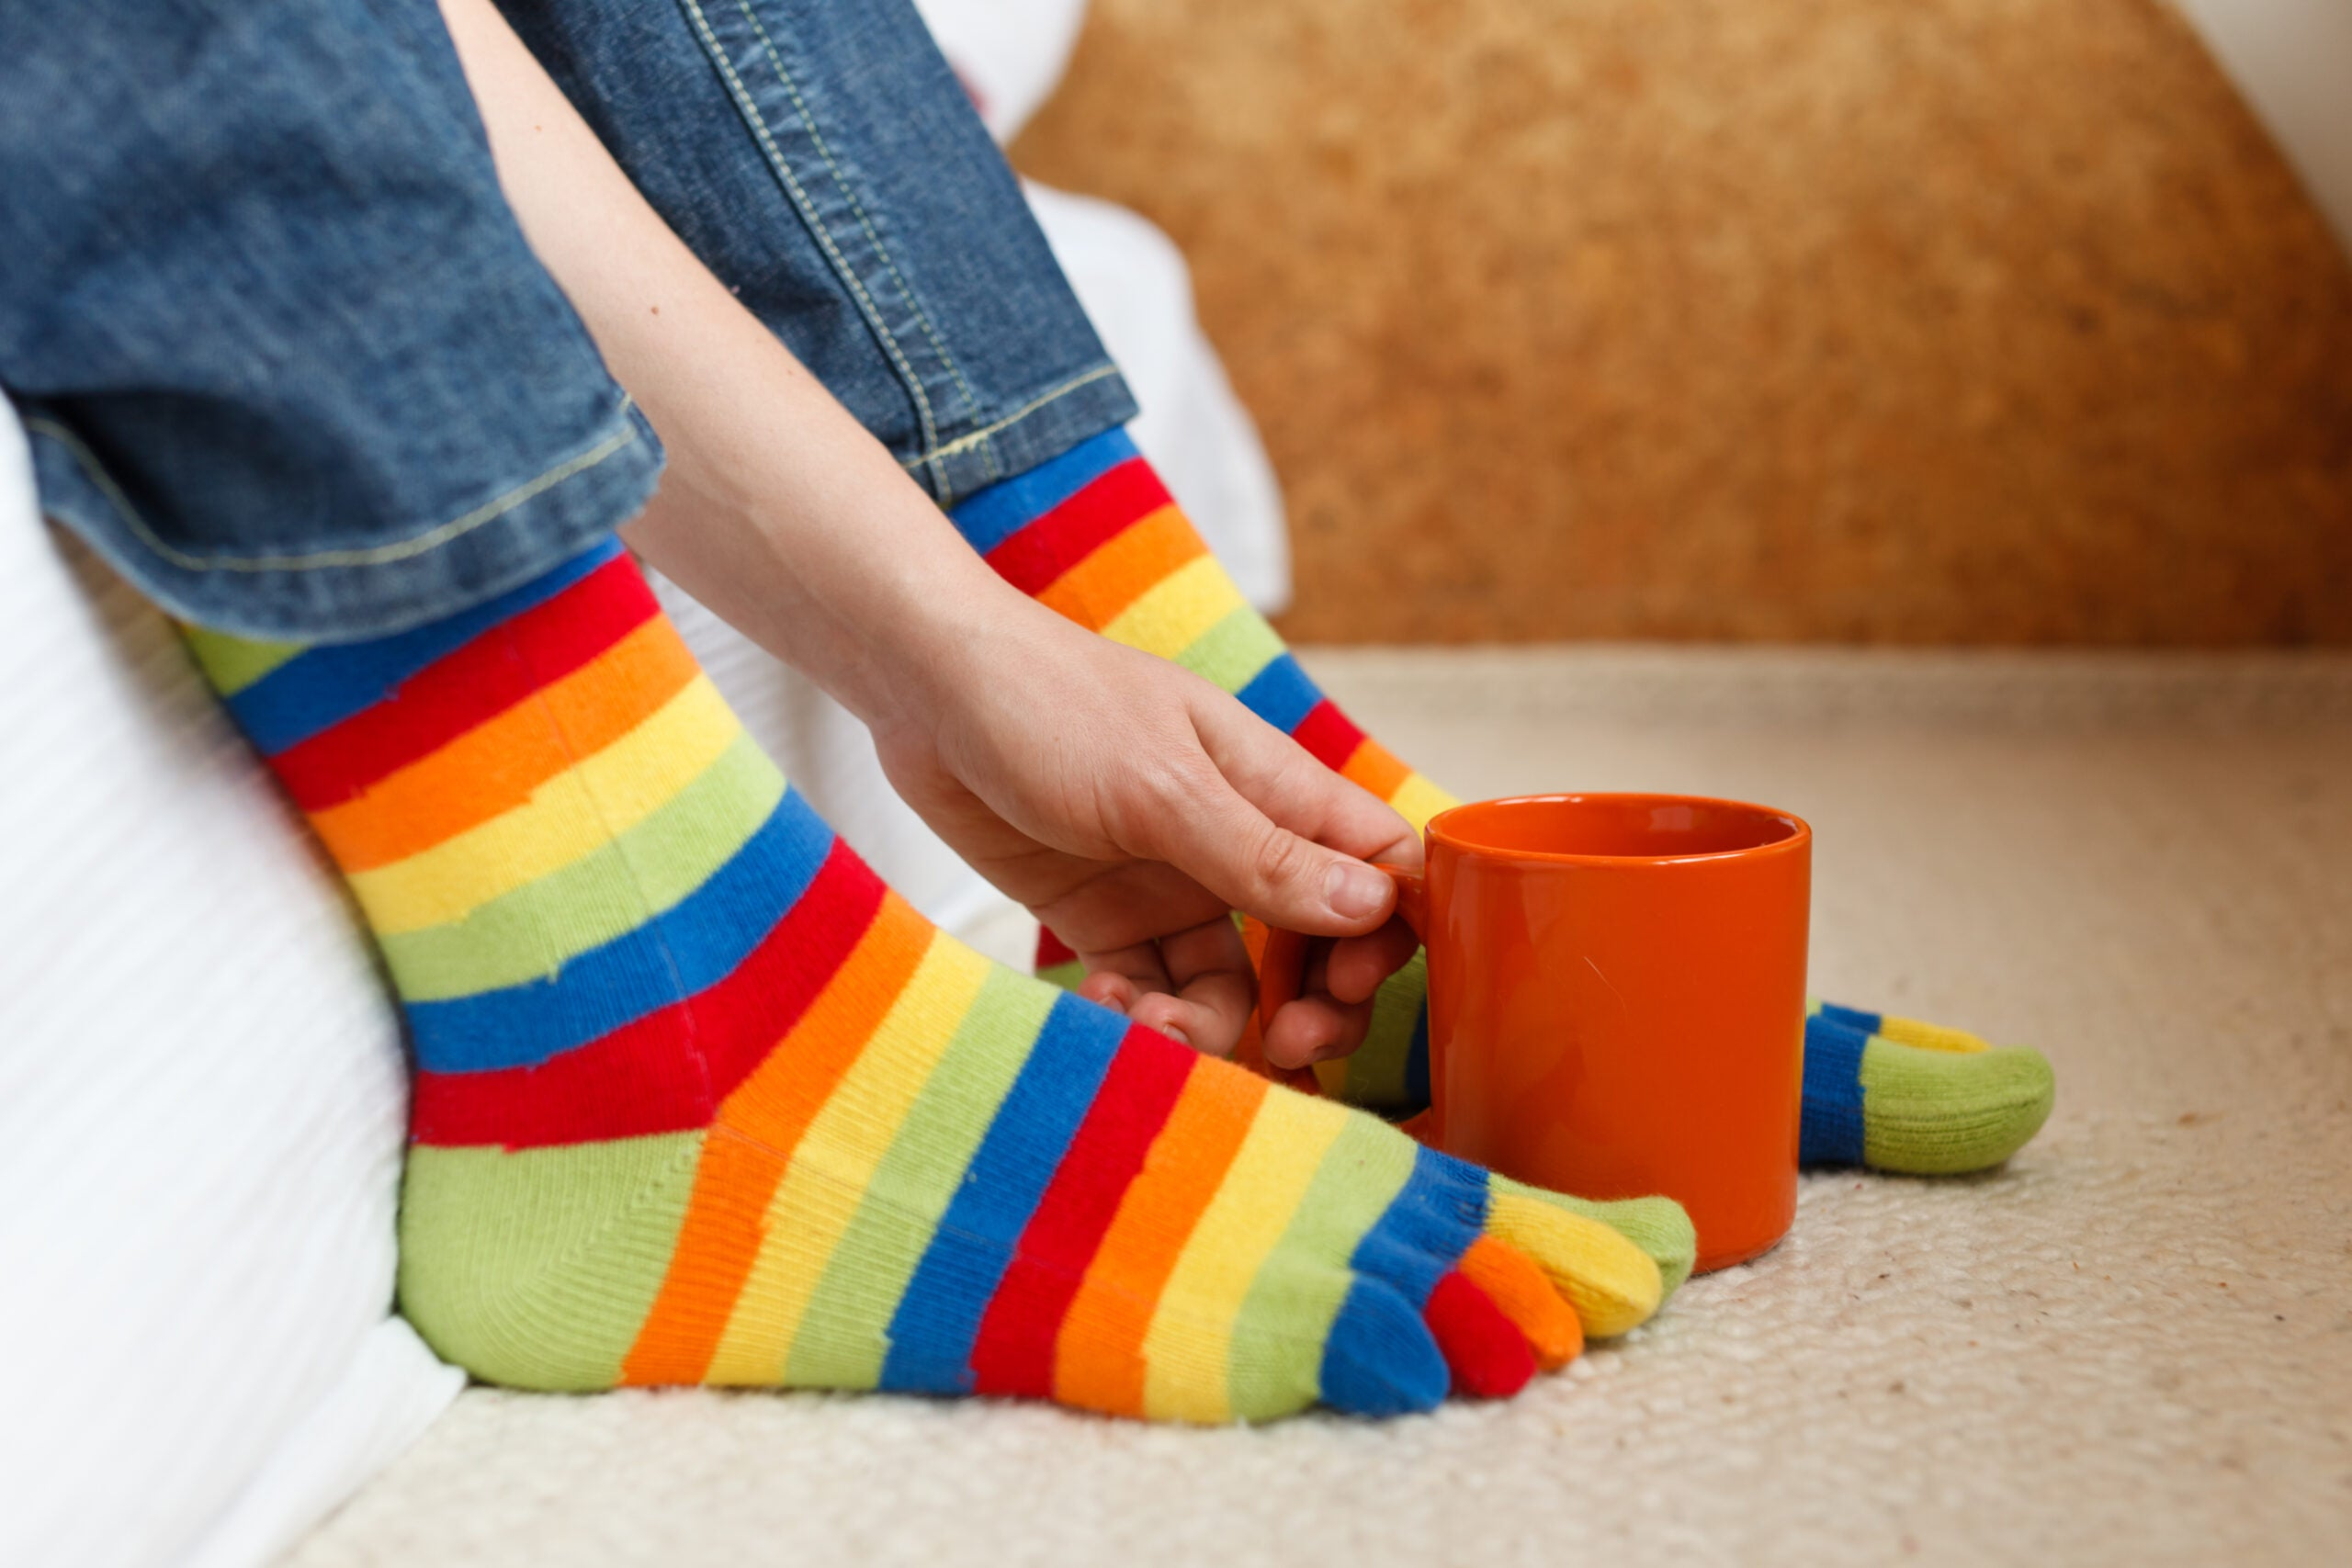 Feet in colorful socks and hand holding coffee cup, concept of home laziness and comfort